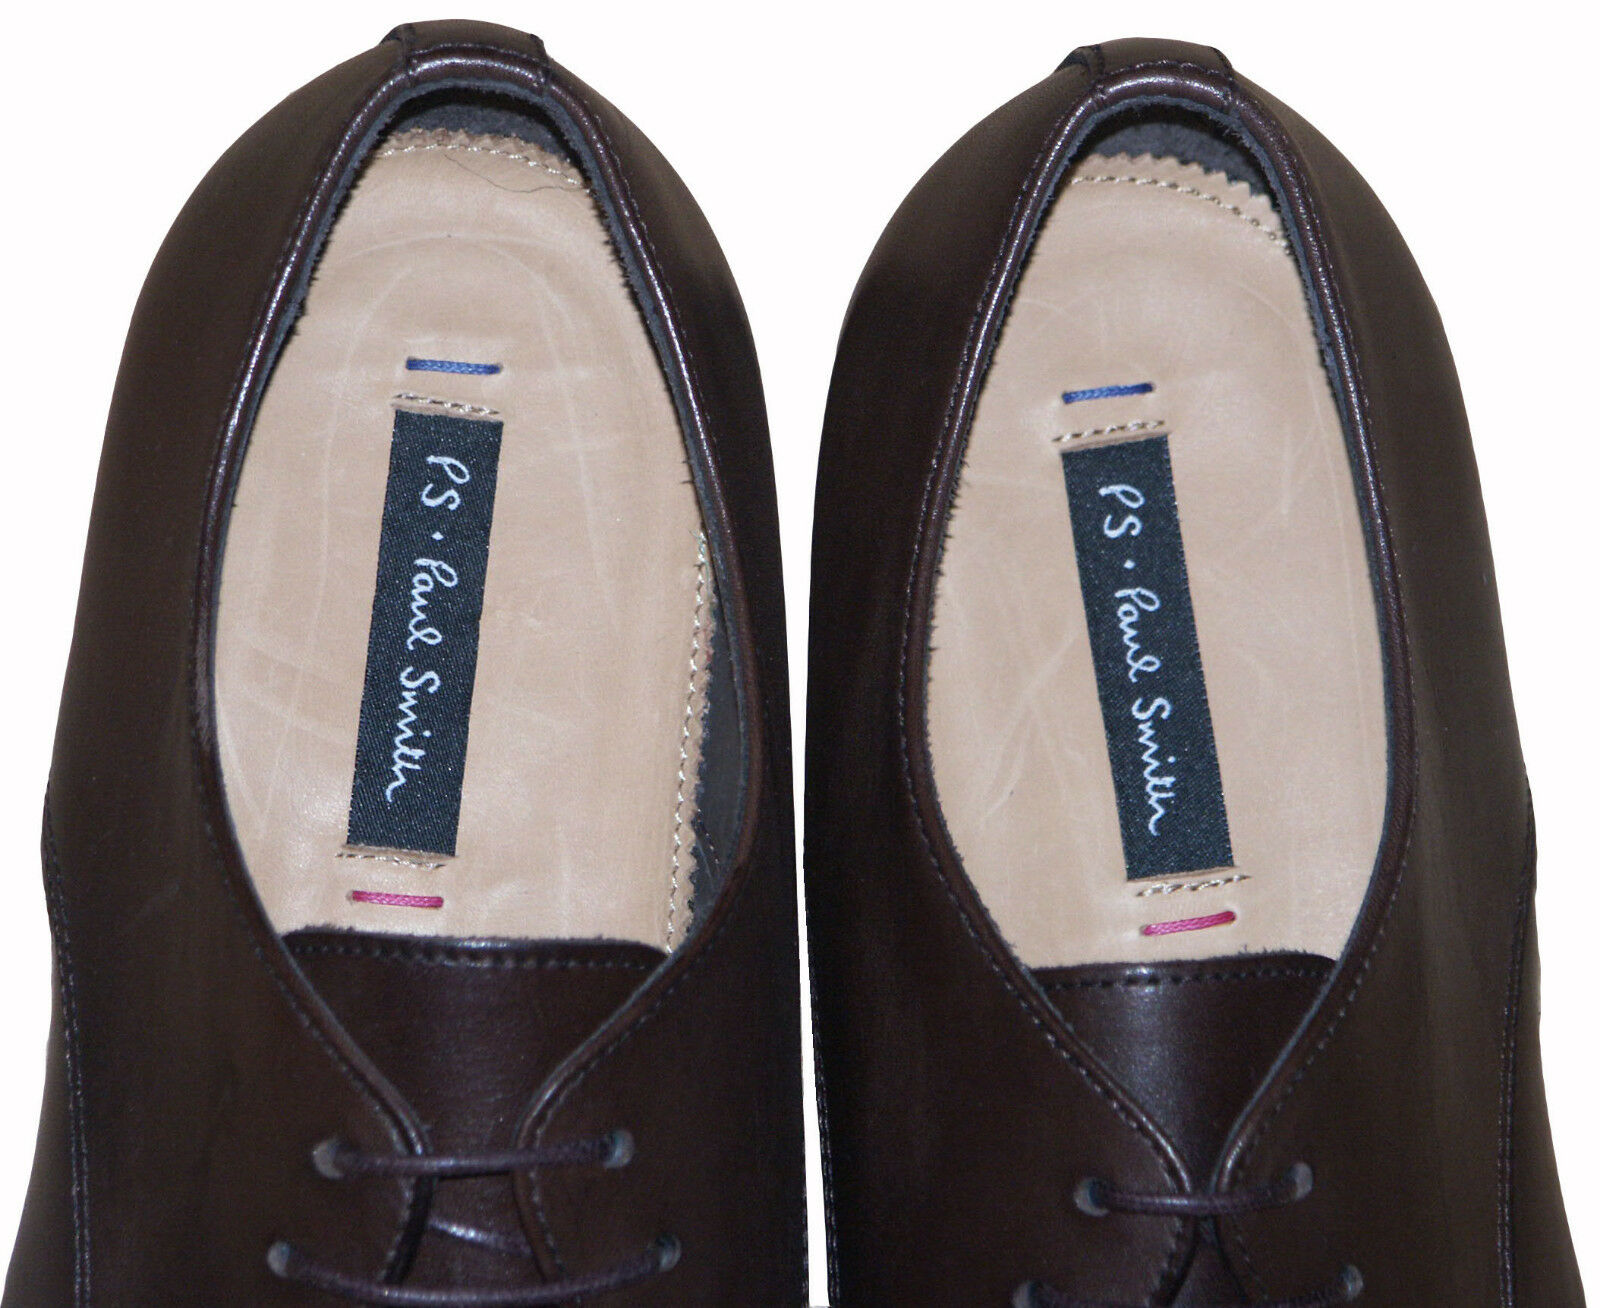 PAUL SMITH LEATHER LEATHER LEATHER MAINLINE FORMAL braun schuhe NEW RARE SZ  UK7   EU 41   US8 3ae1ee